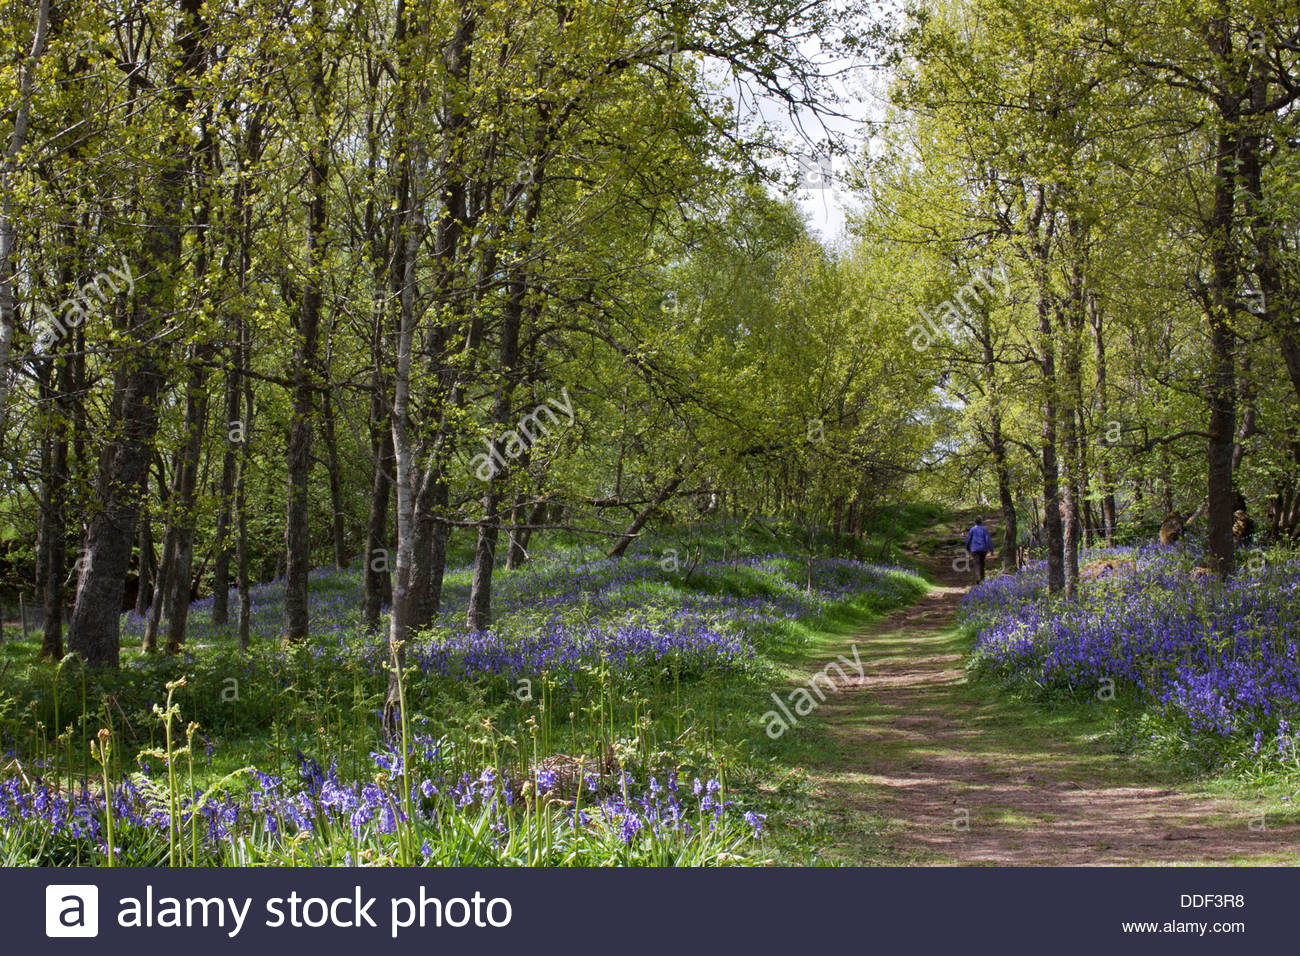 Through the bluebells on the Pennine Way near Wynch Bridge, Upper Teesdale, Co Durham, England - Stock Image